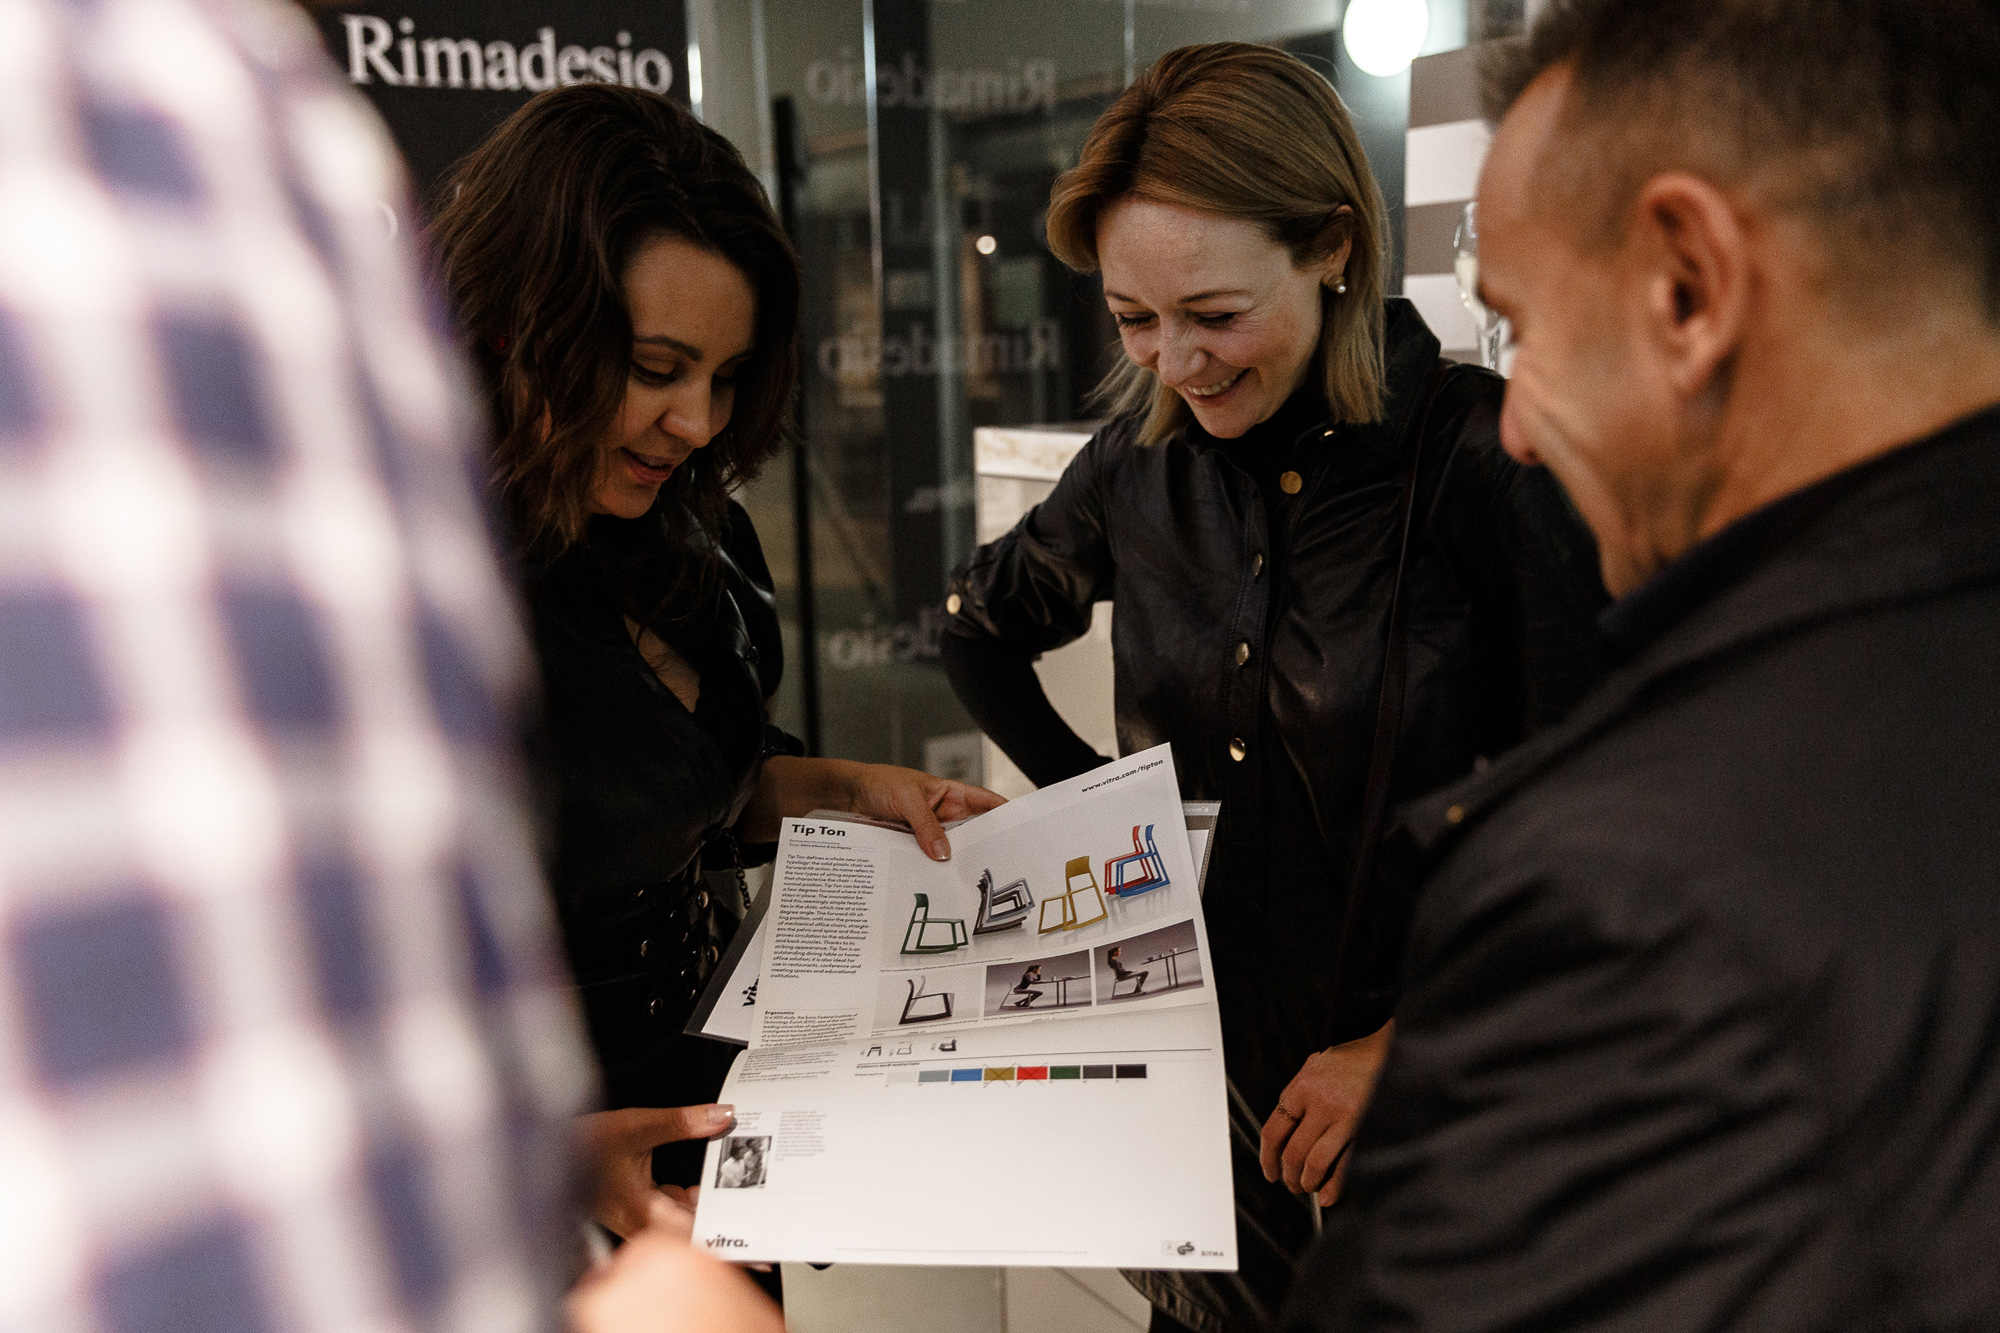 rimadesio-moscow-238